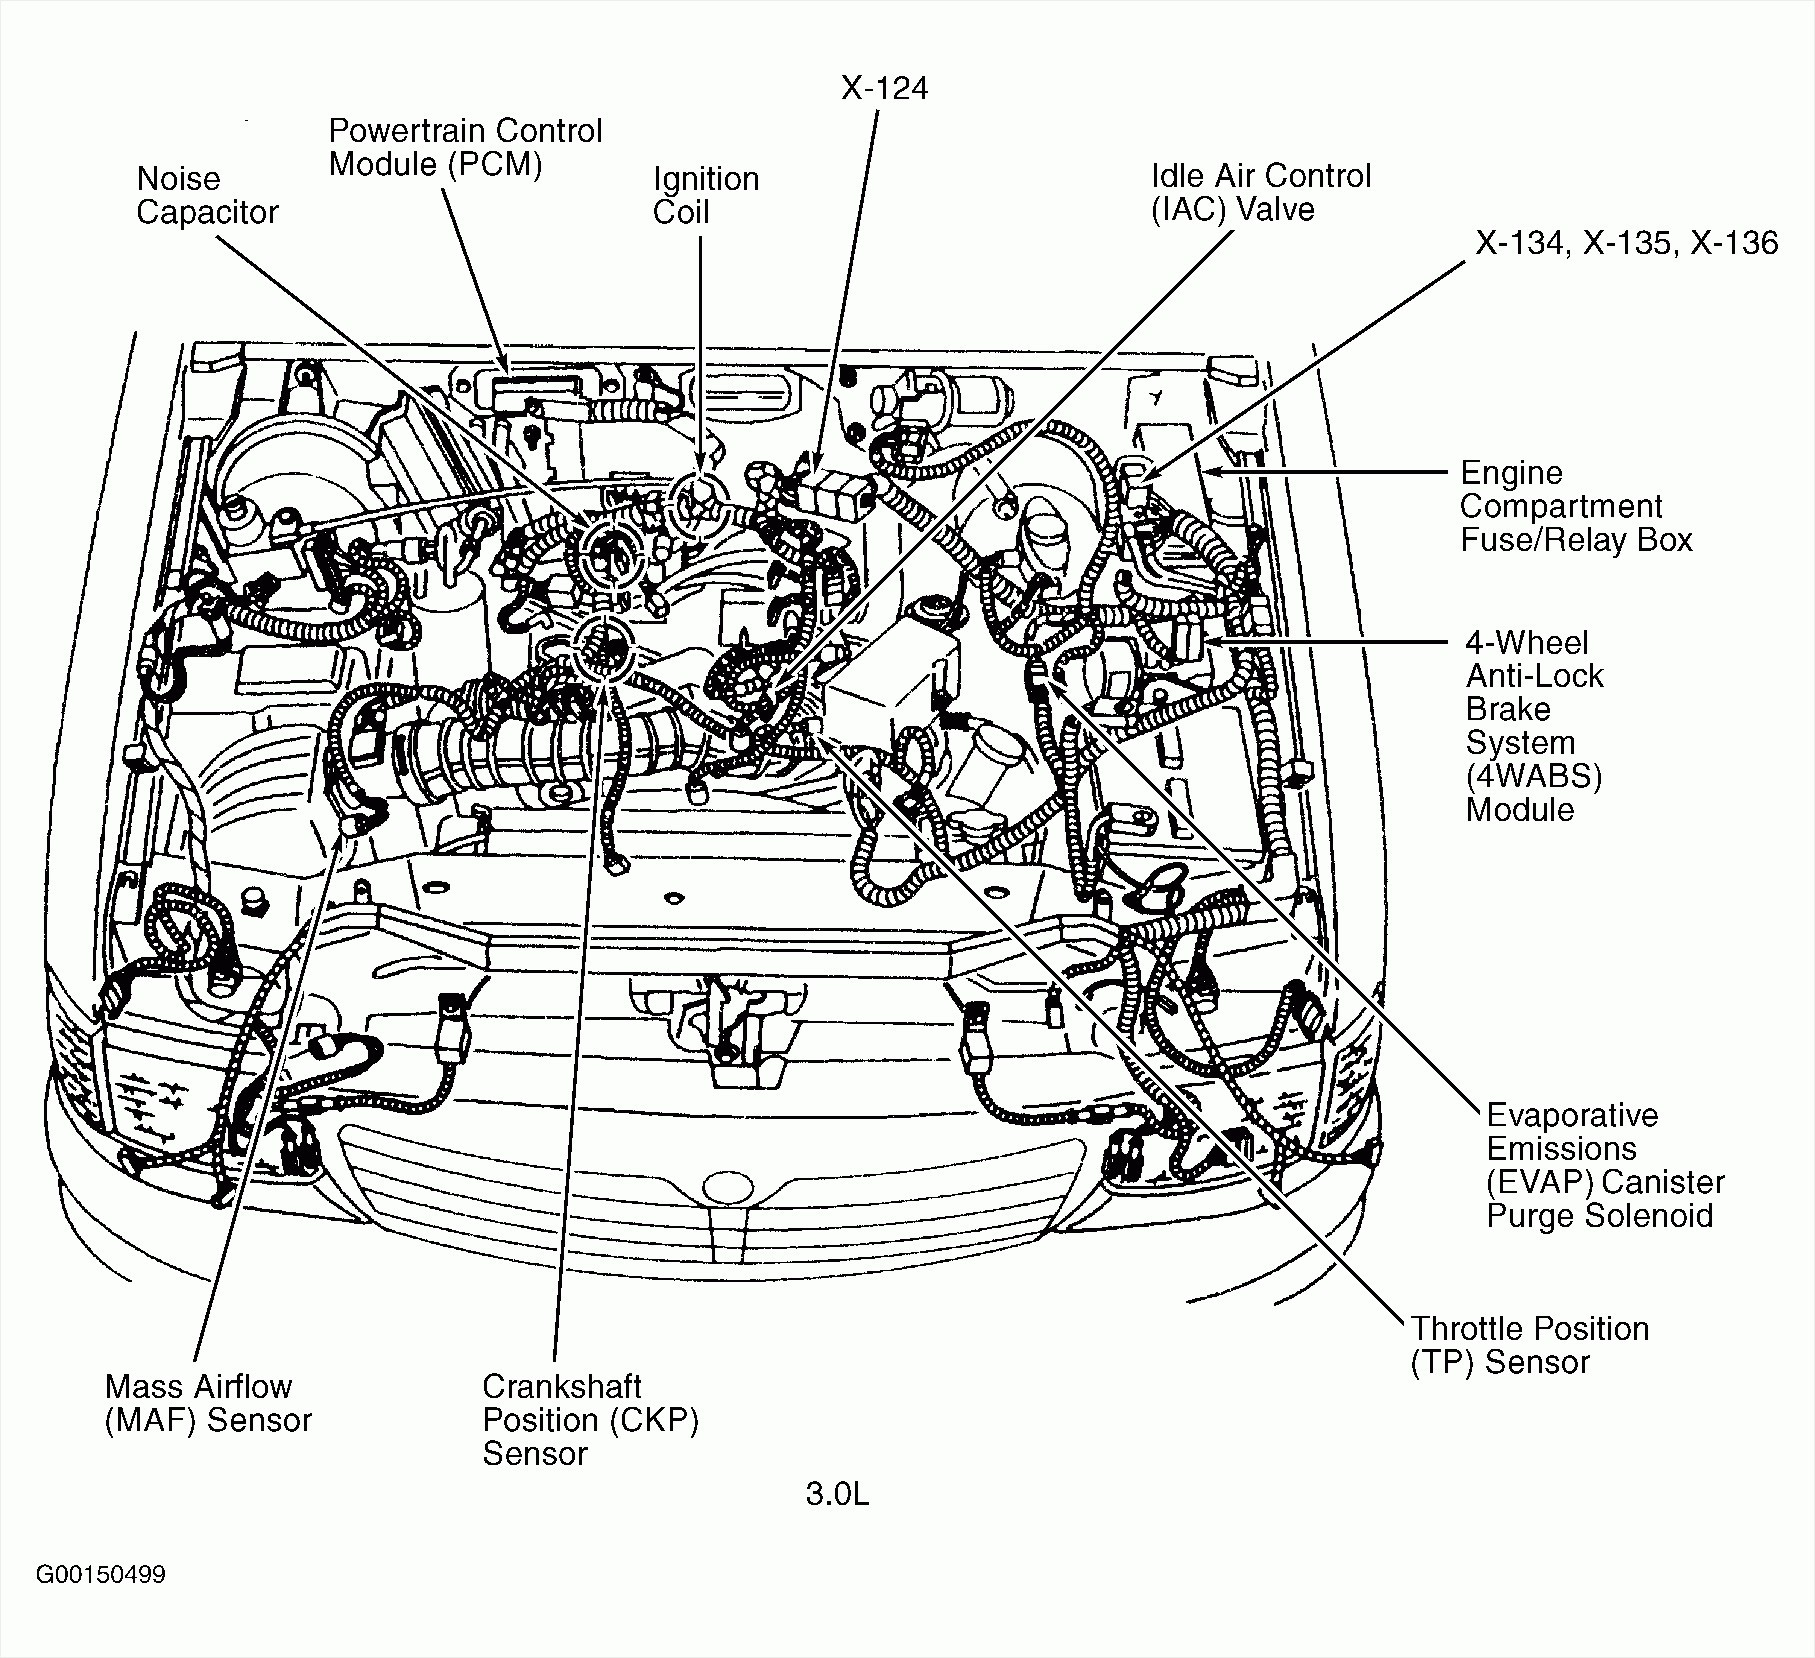 Exploded Engine Diagram 1997 Mazda 626 Wiring Diagram Mazda Wiring Diagrams  Instructions Of Exploded Engine Diagram